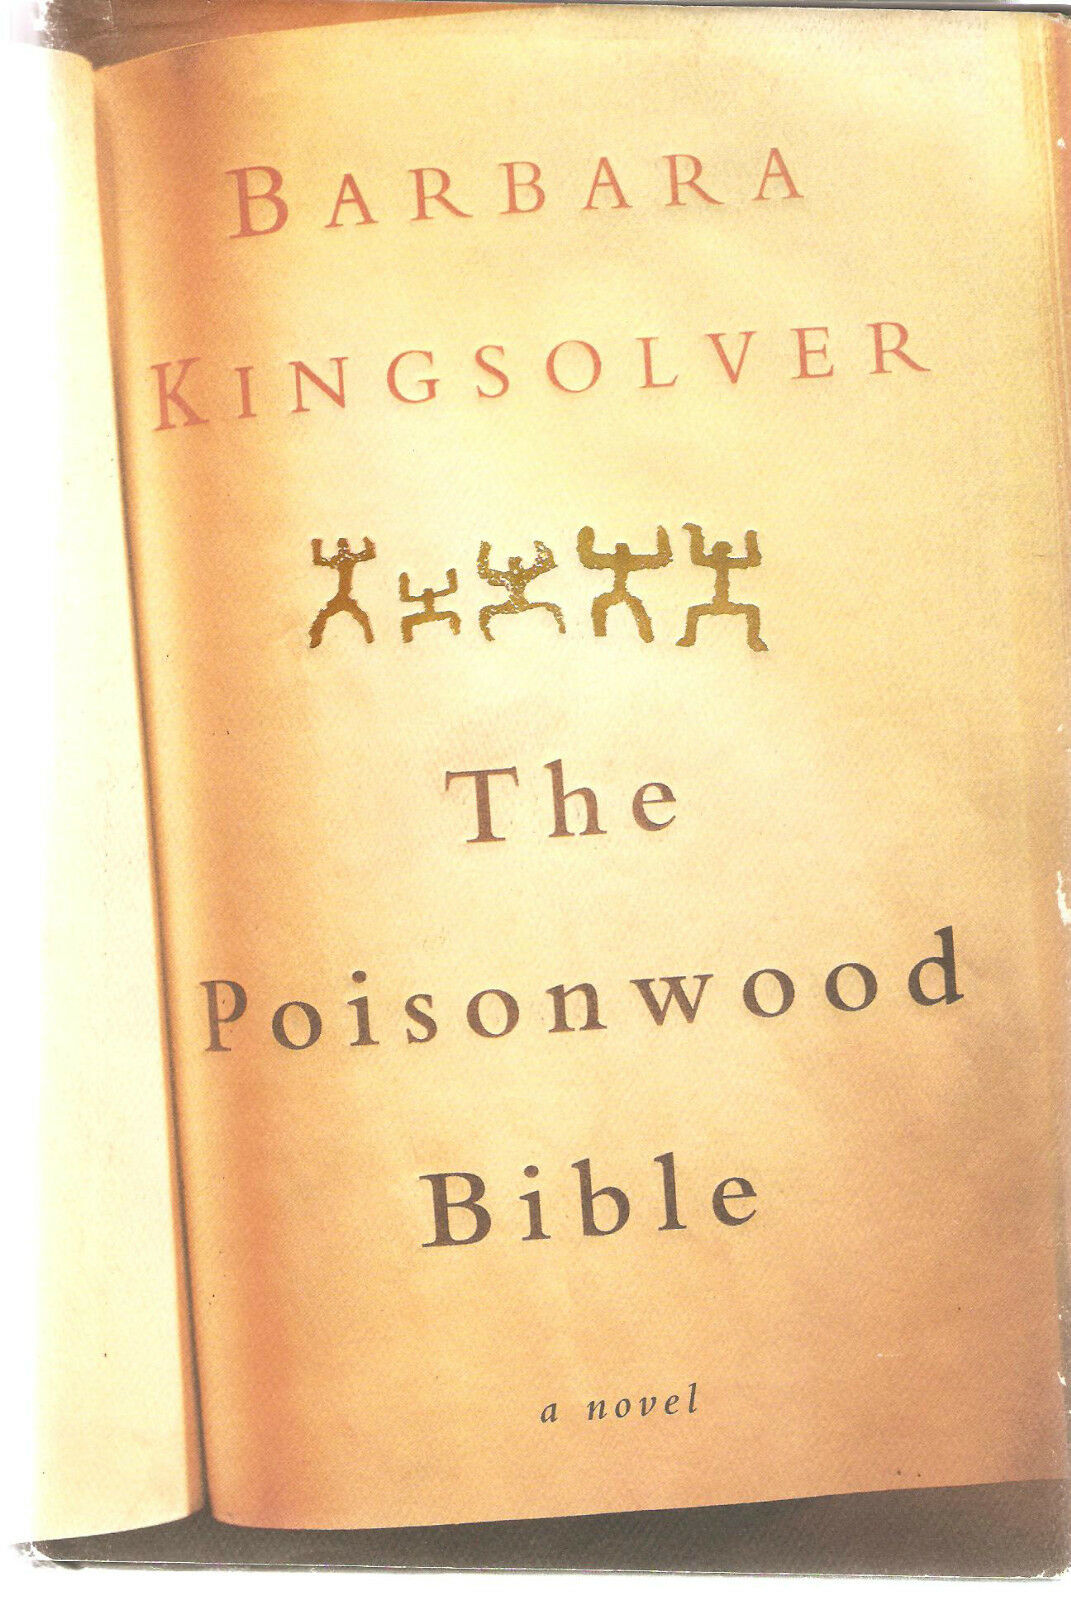 poisonwood bible symbolism The poisonwood bible major symbols methuselah, the parrot methuselah is the pet parrot of brother fowles (the previous missionary) that was left behind methuselah.